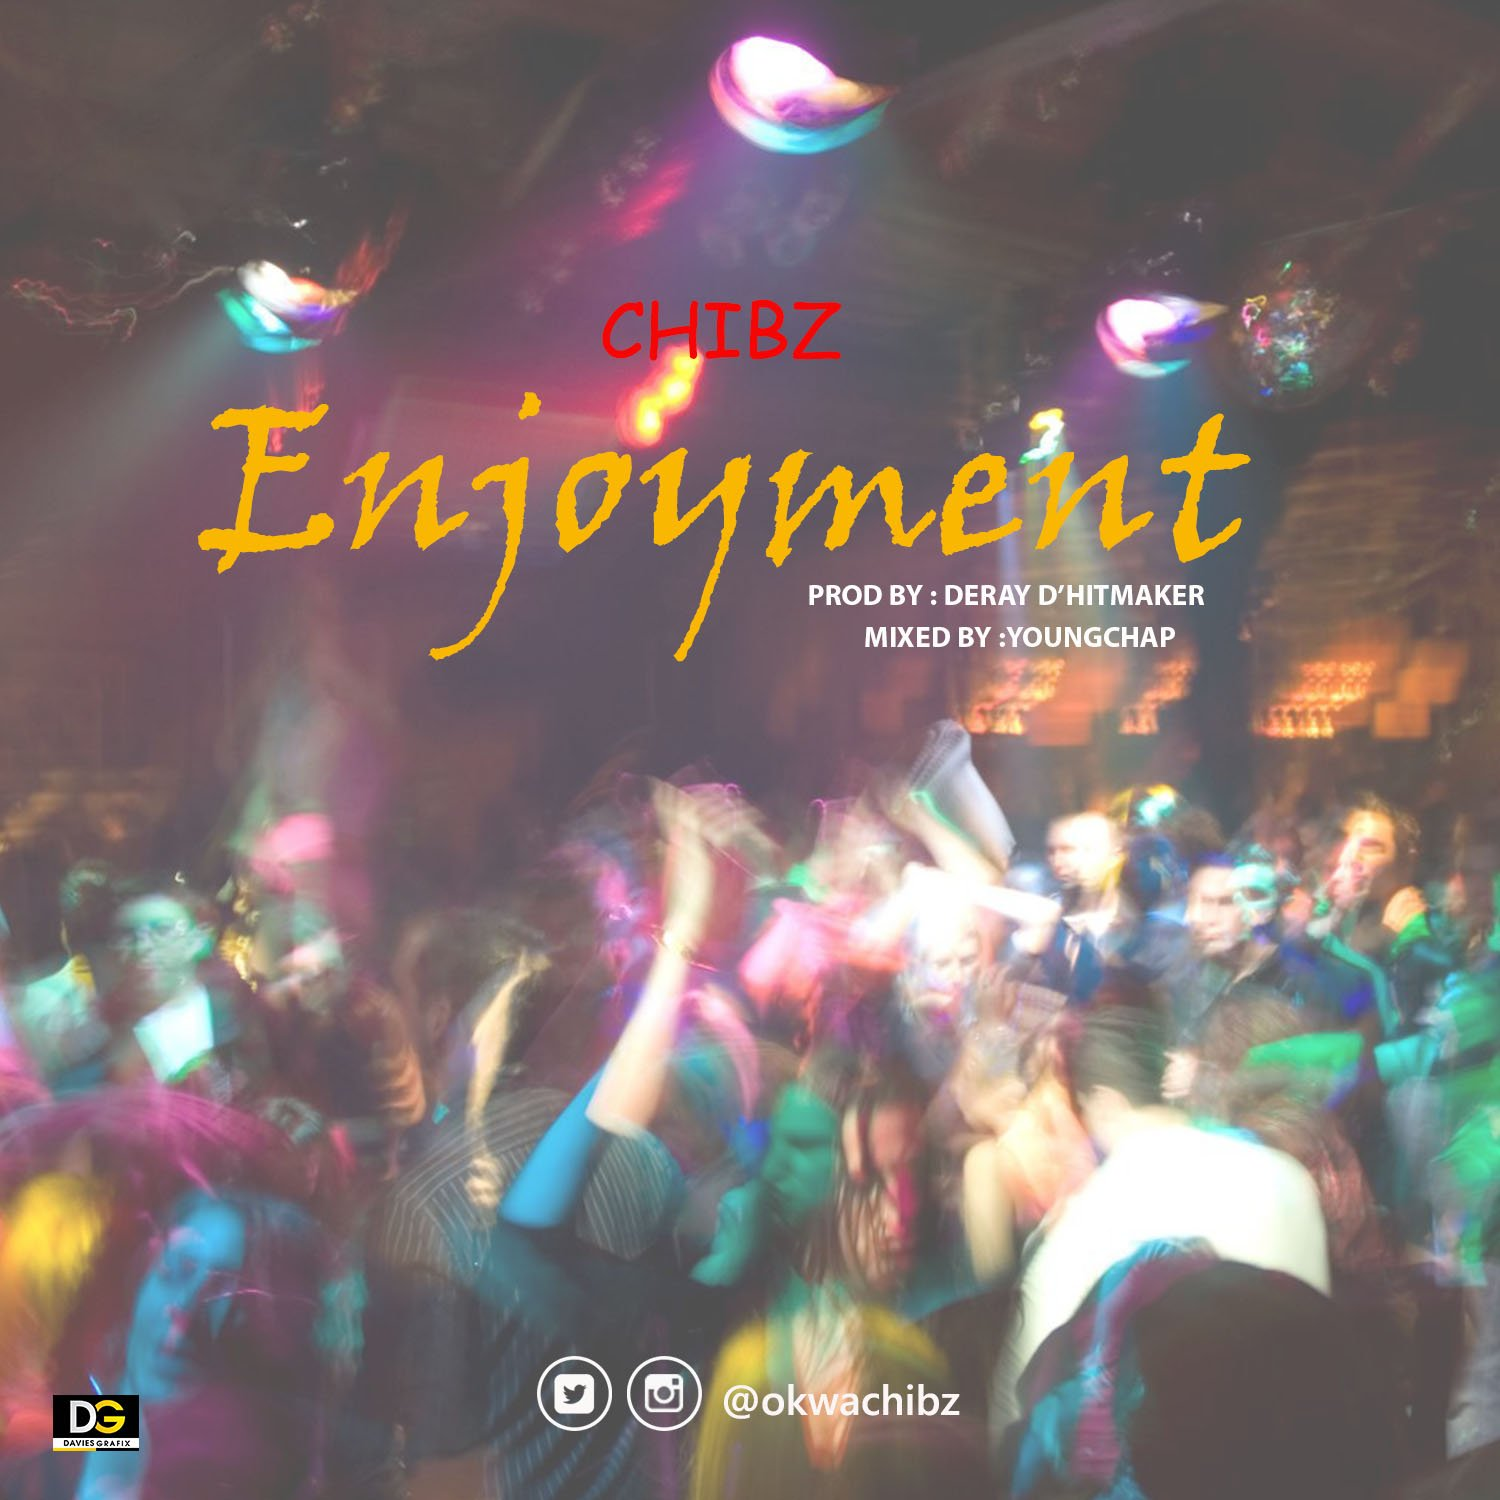 VIDEO: Chibz – Enjoyment